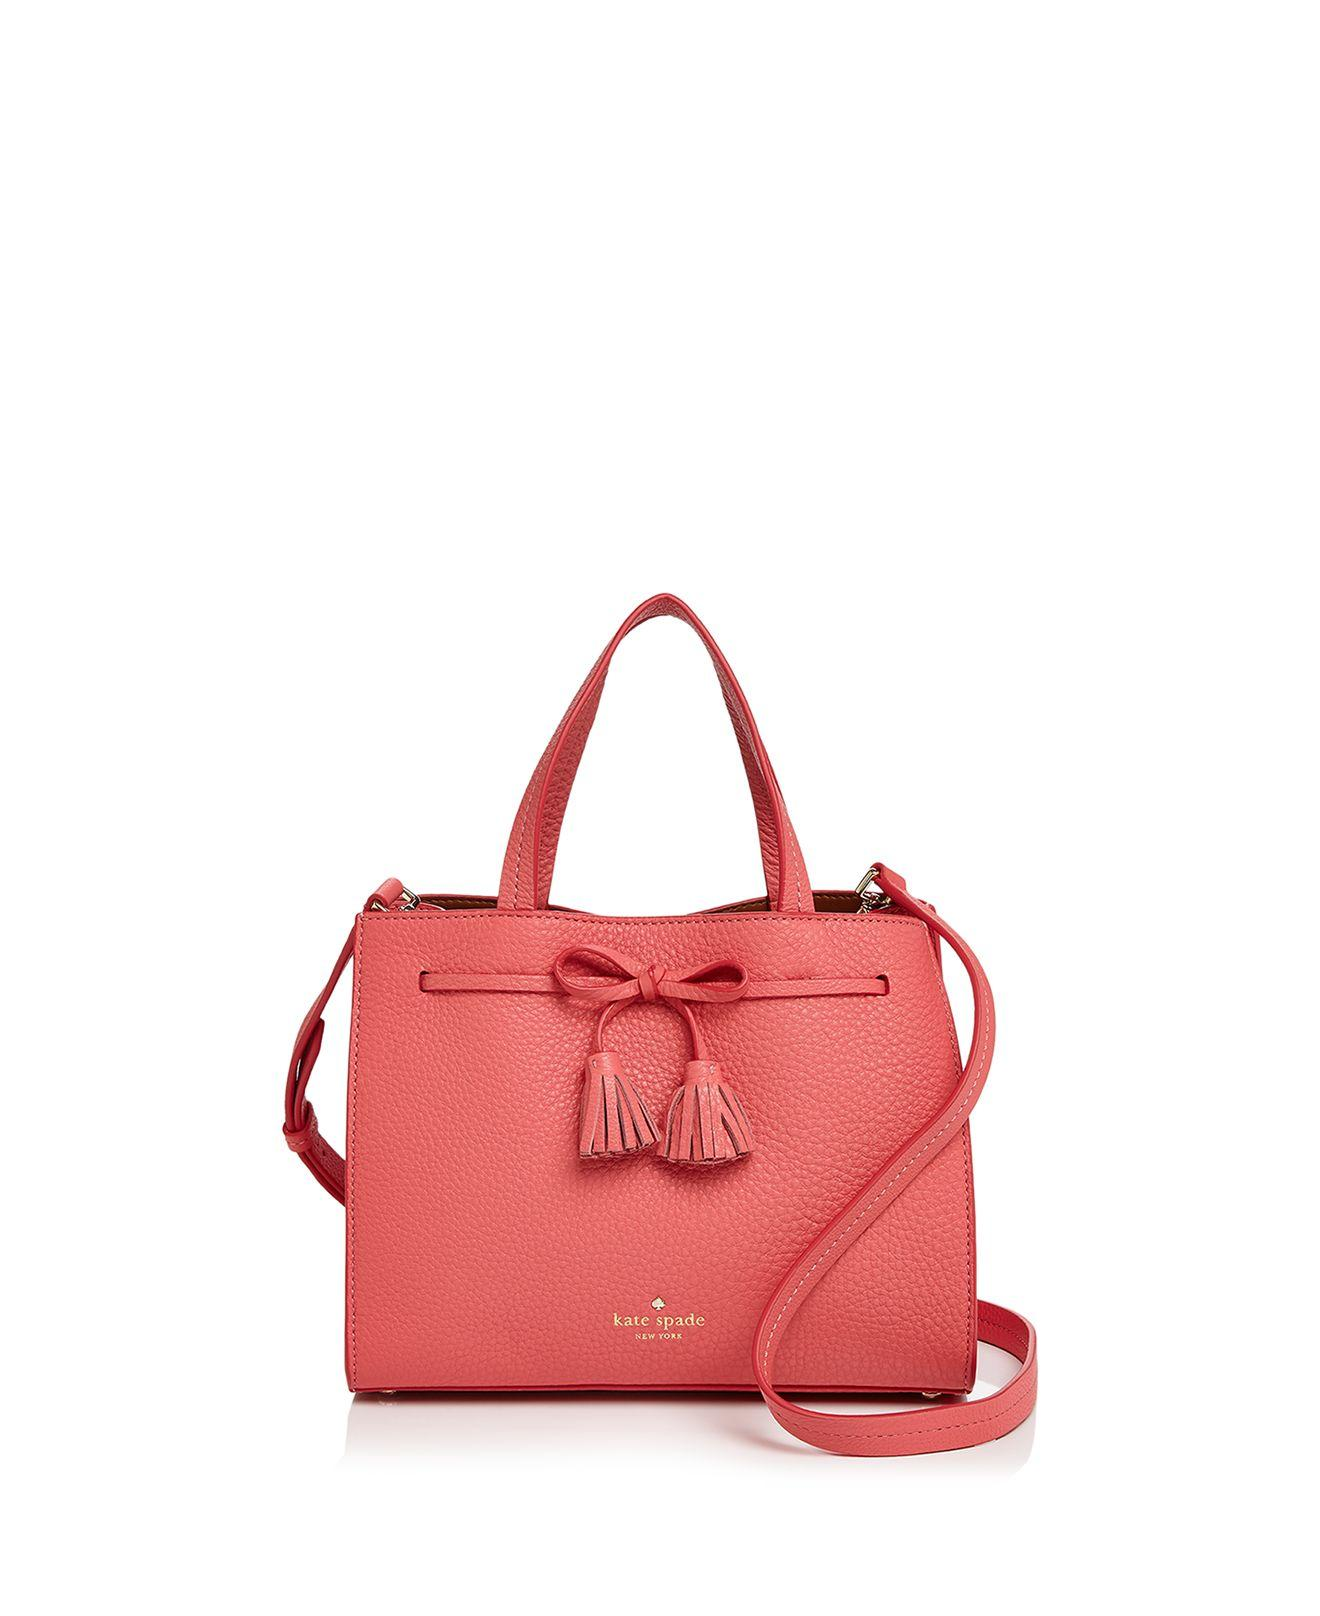 d72037cc732f Kate Spade Hayes Street Isobel Small Leather Satchel - Lyst